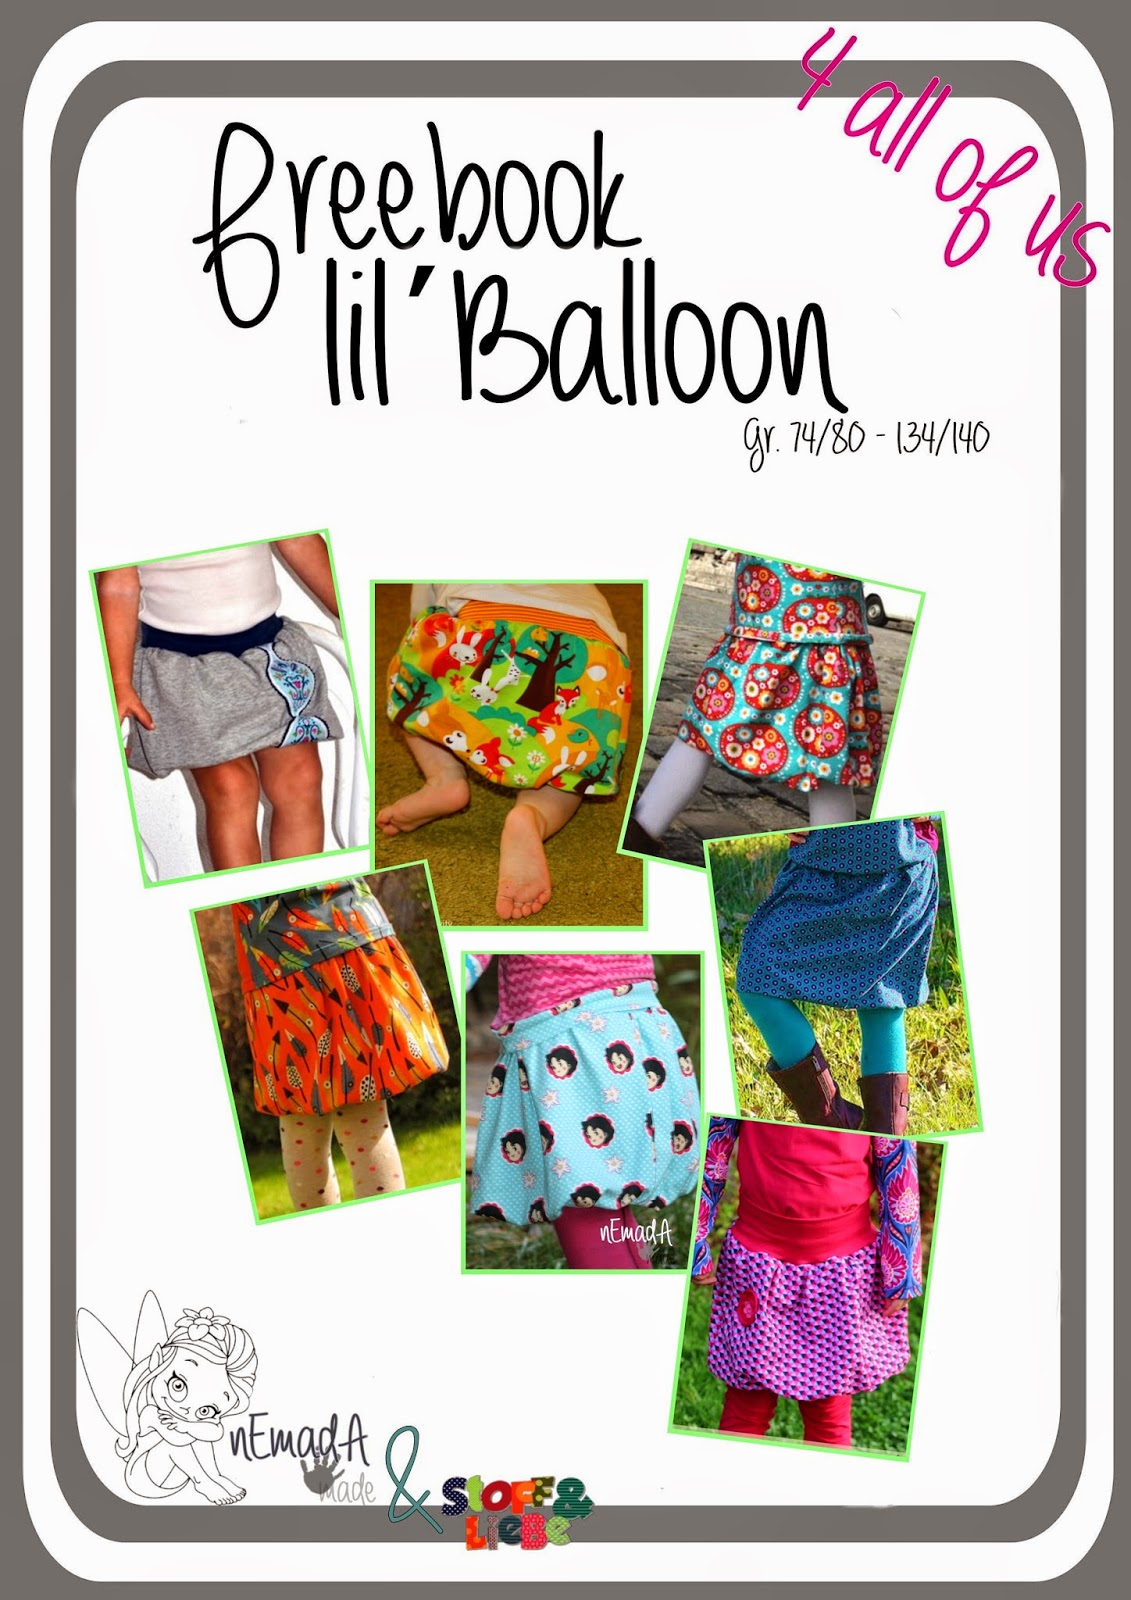 Freebook_nEmadA_lil_Balloon